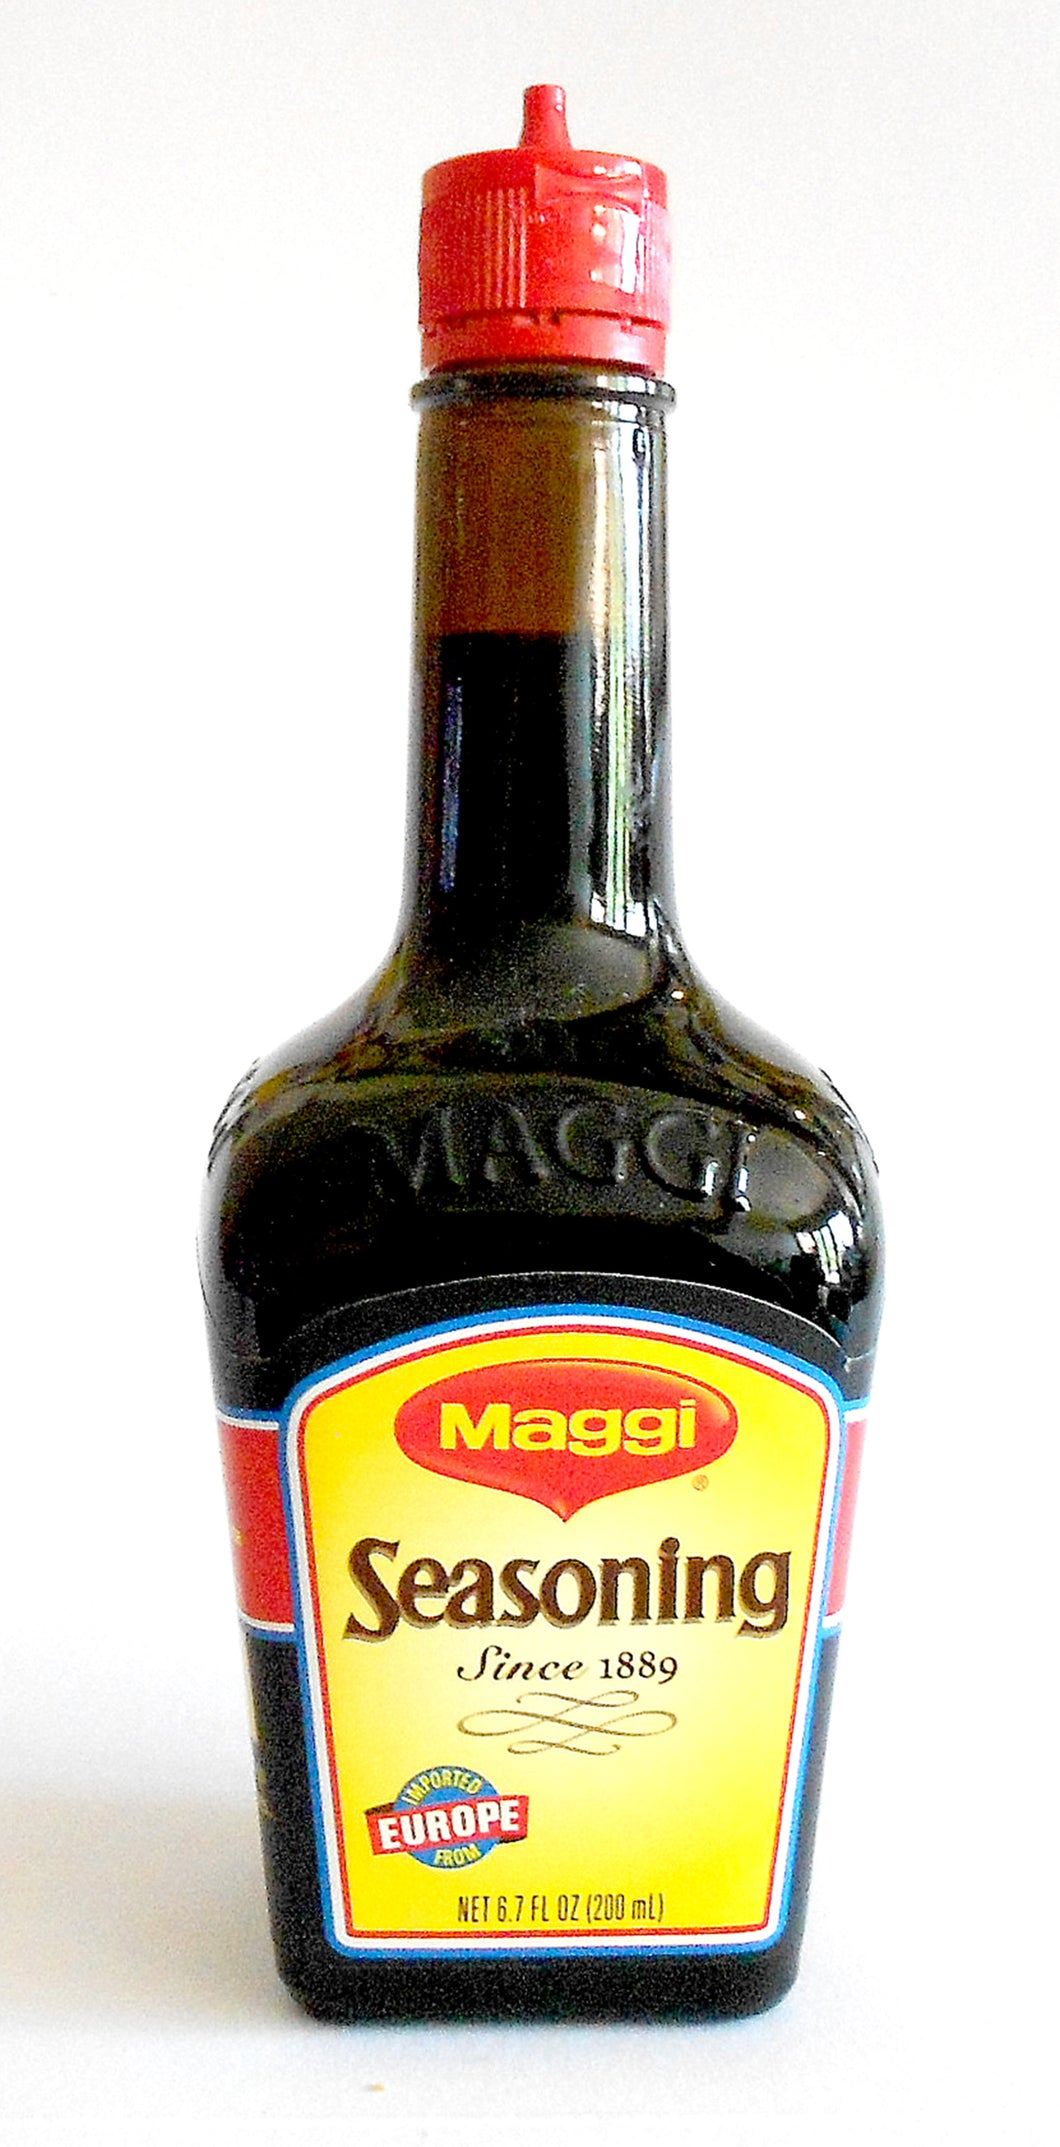 Maggi Europe Seasoning Sauce by Nestle 6.7 Fl Oz.